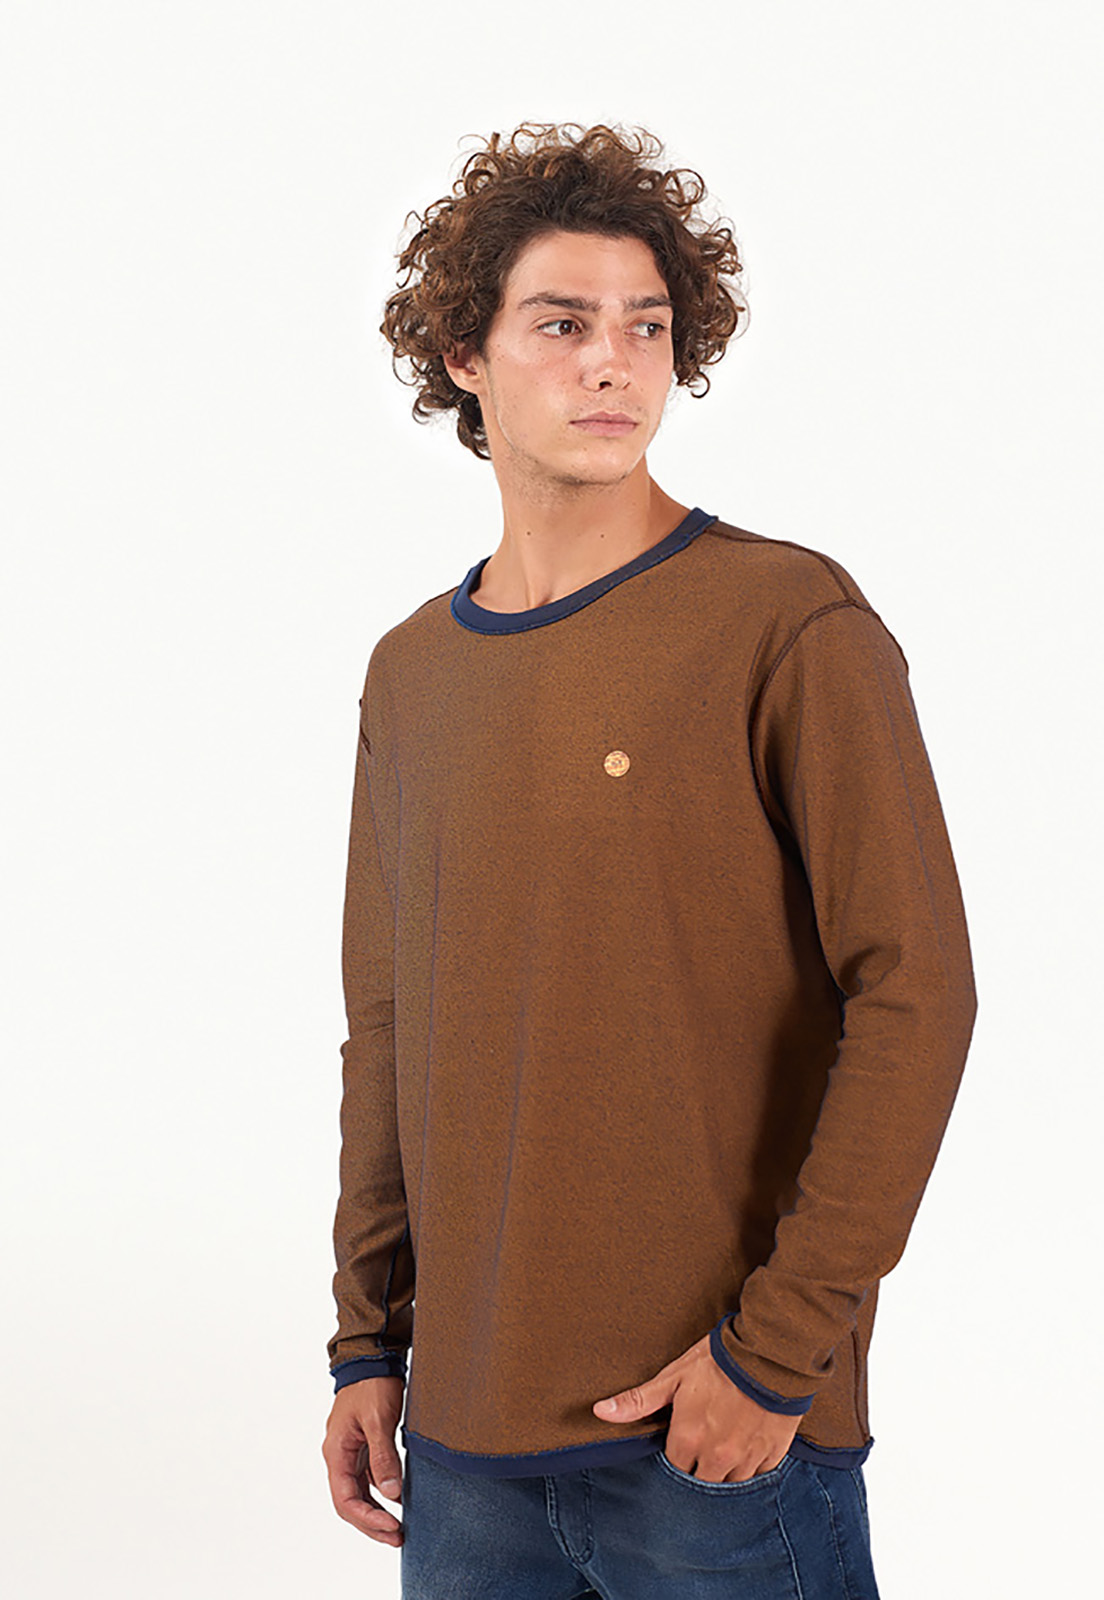 Blusa Double Camel melty  - melty surf & Co.